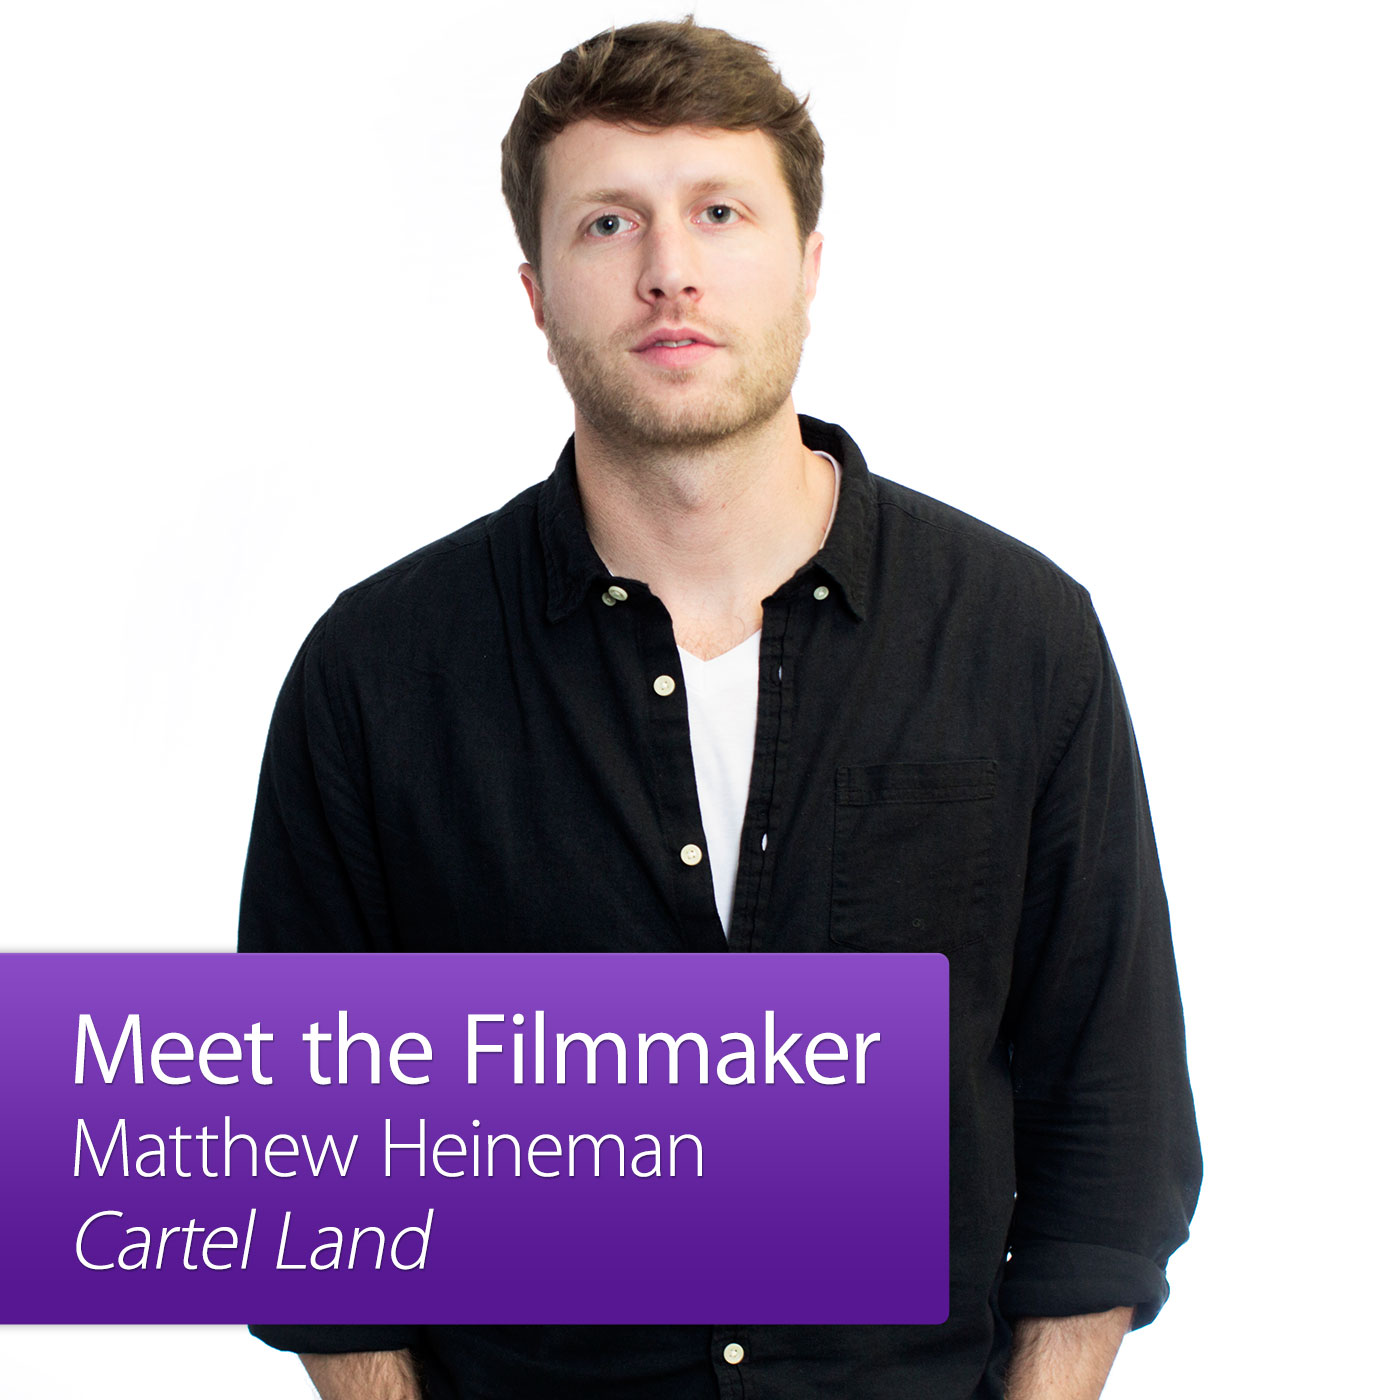 Cartel Land: Meet the Filmmaker